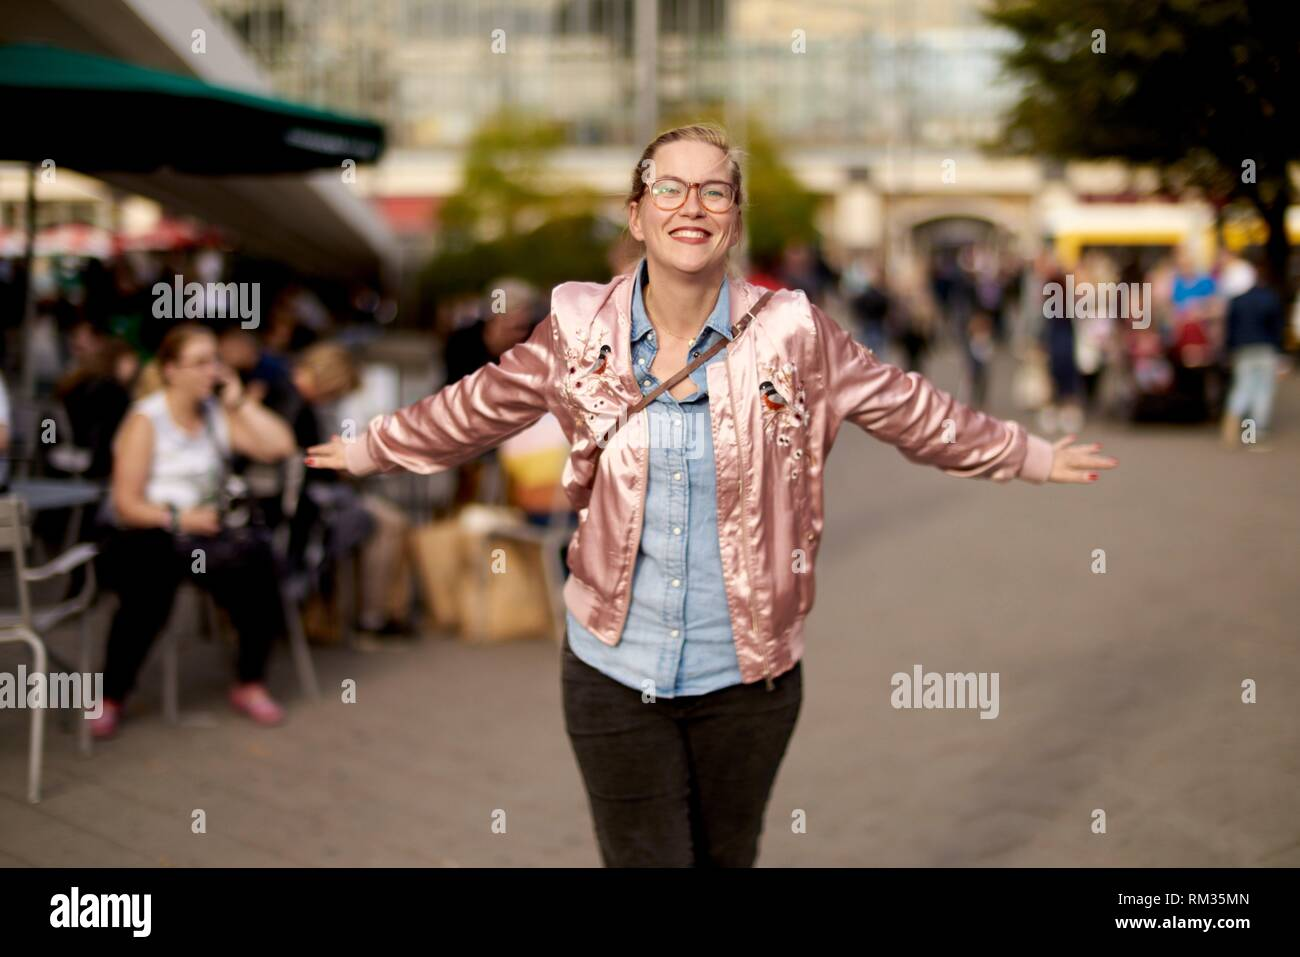 Lively woman with open arms dancing at Alexanderplatz, Berlin, Germany Stock Photo